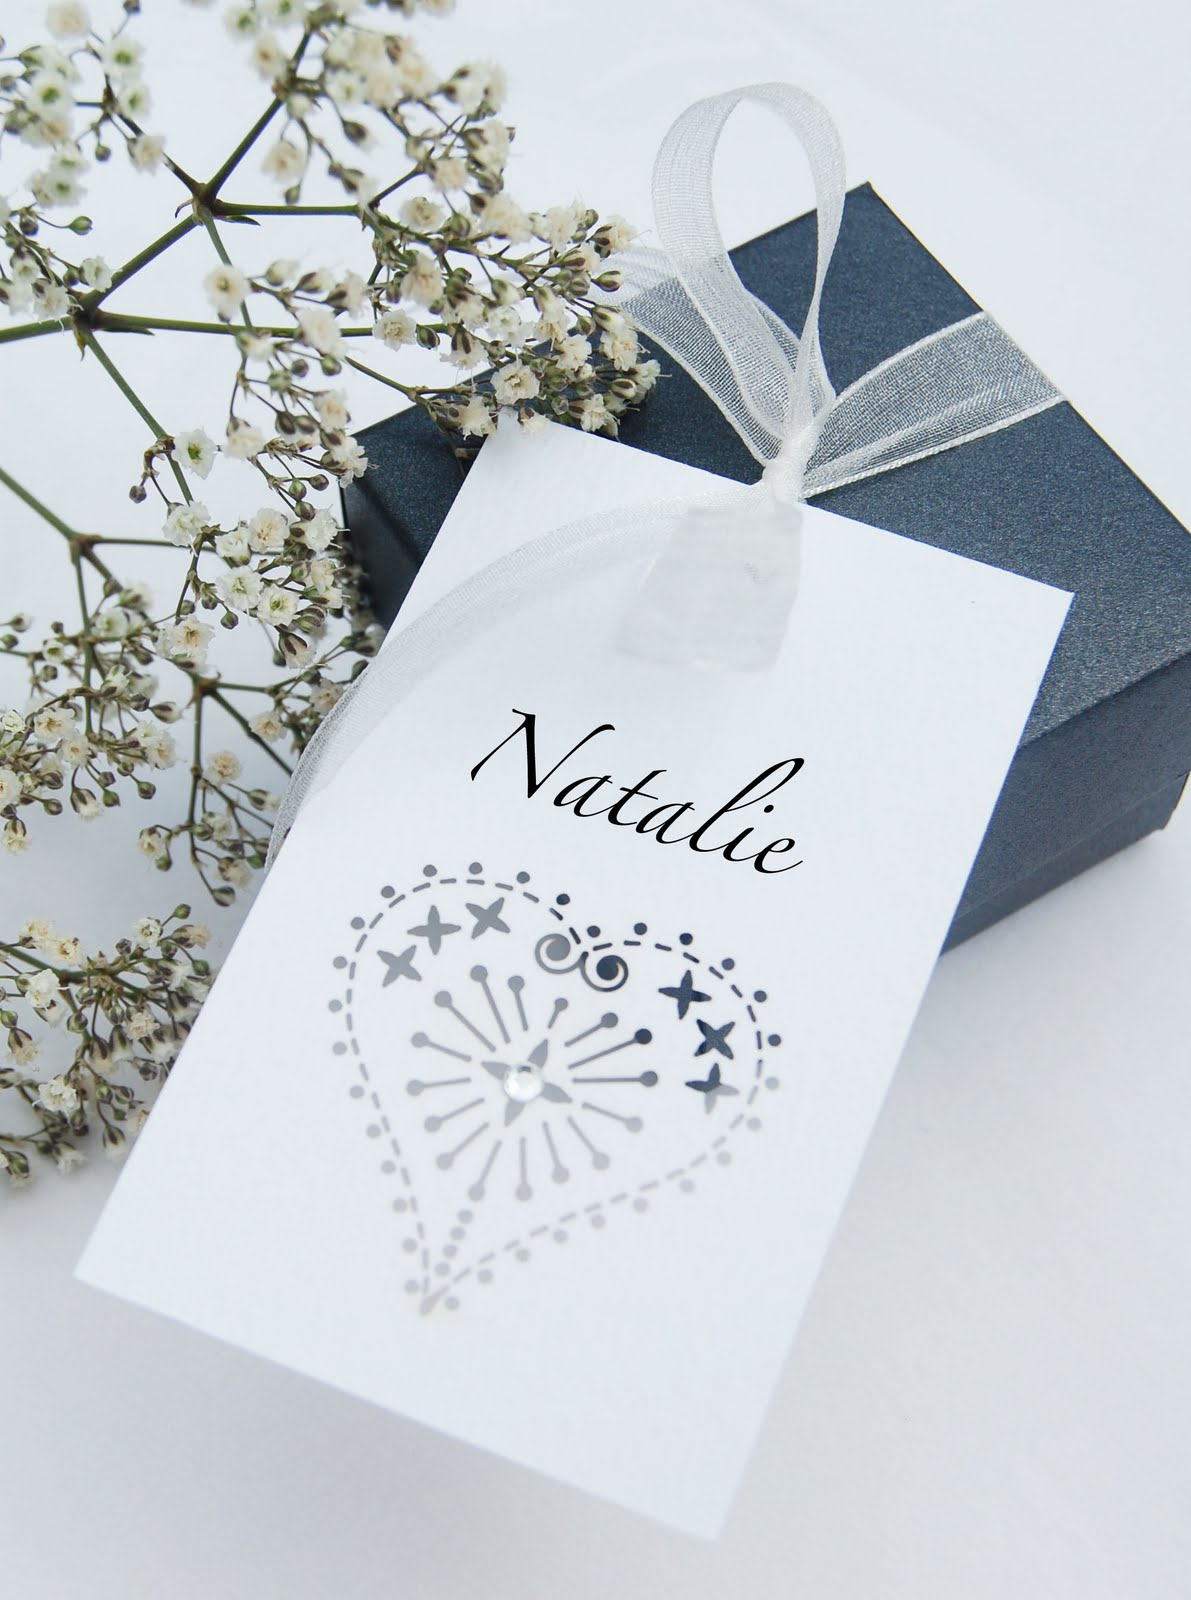 creative wedding programs